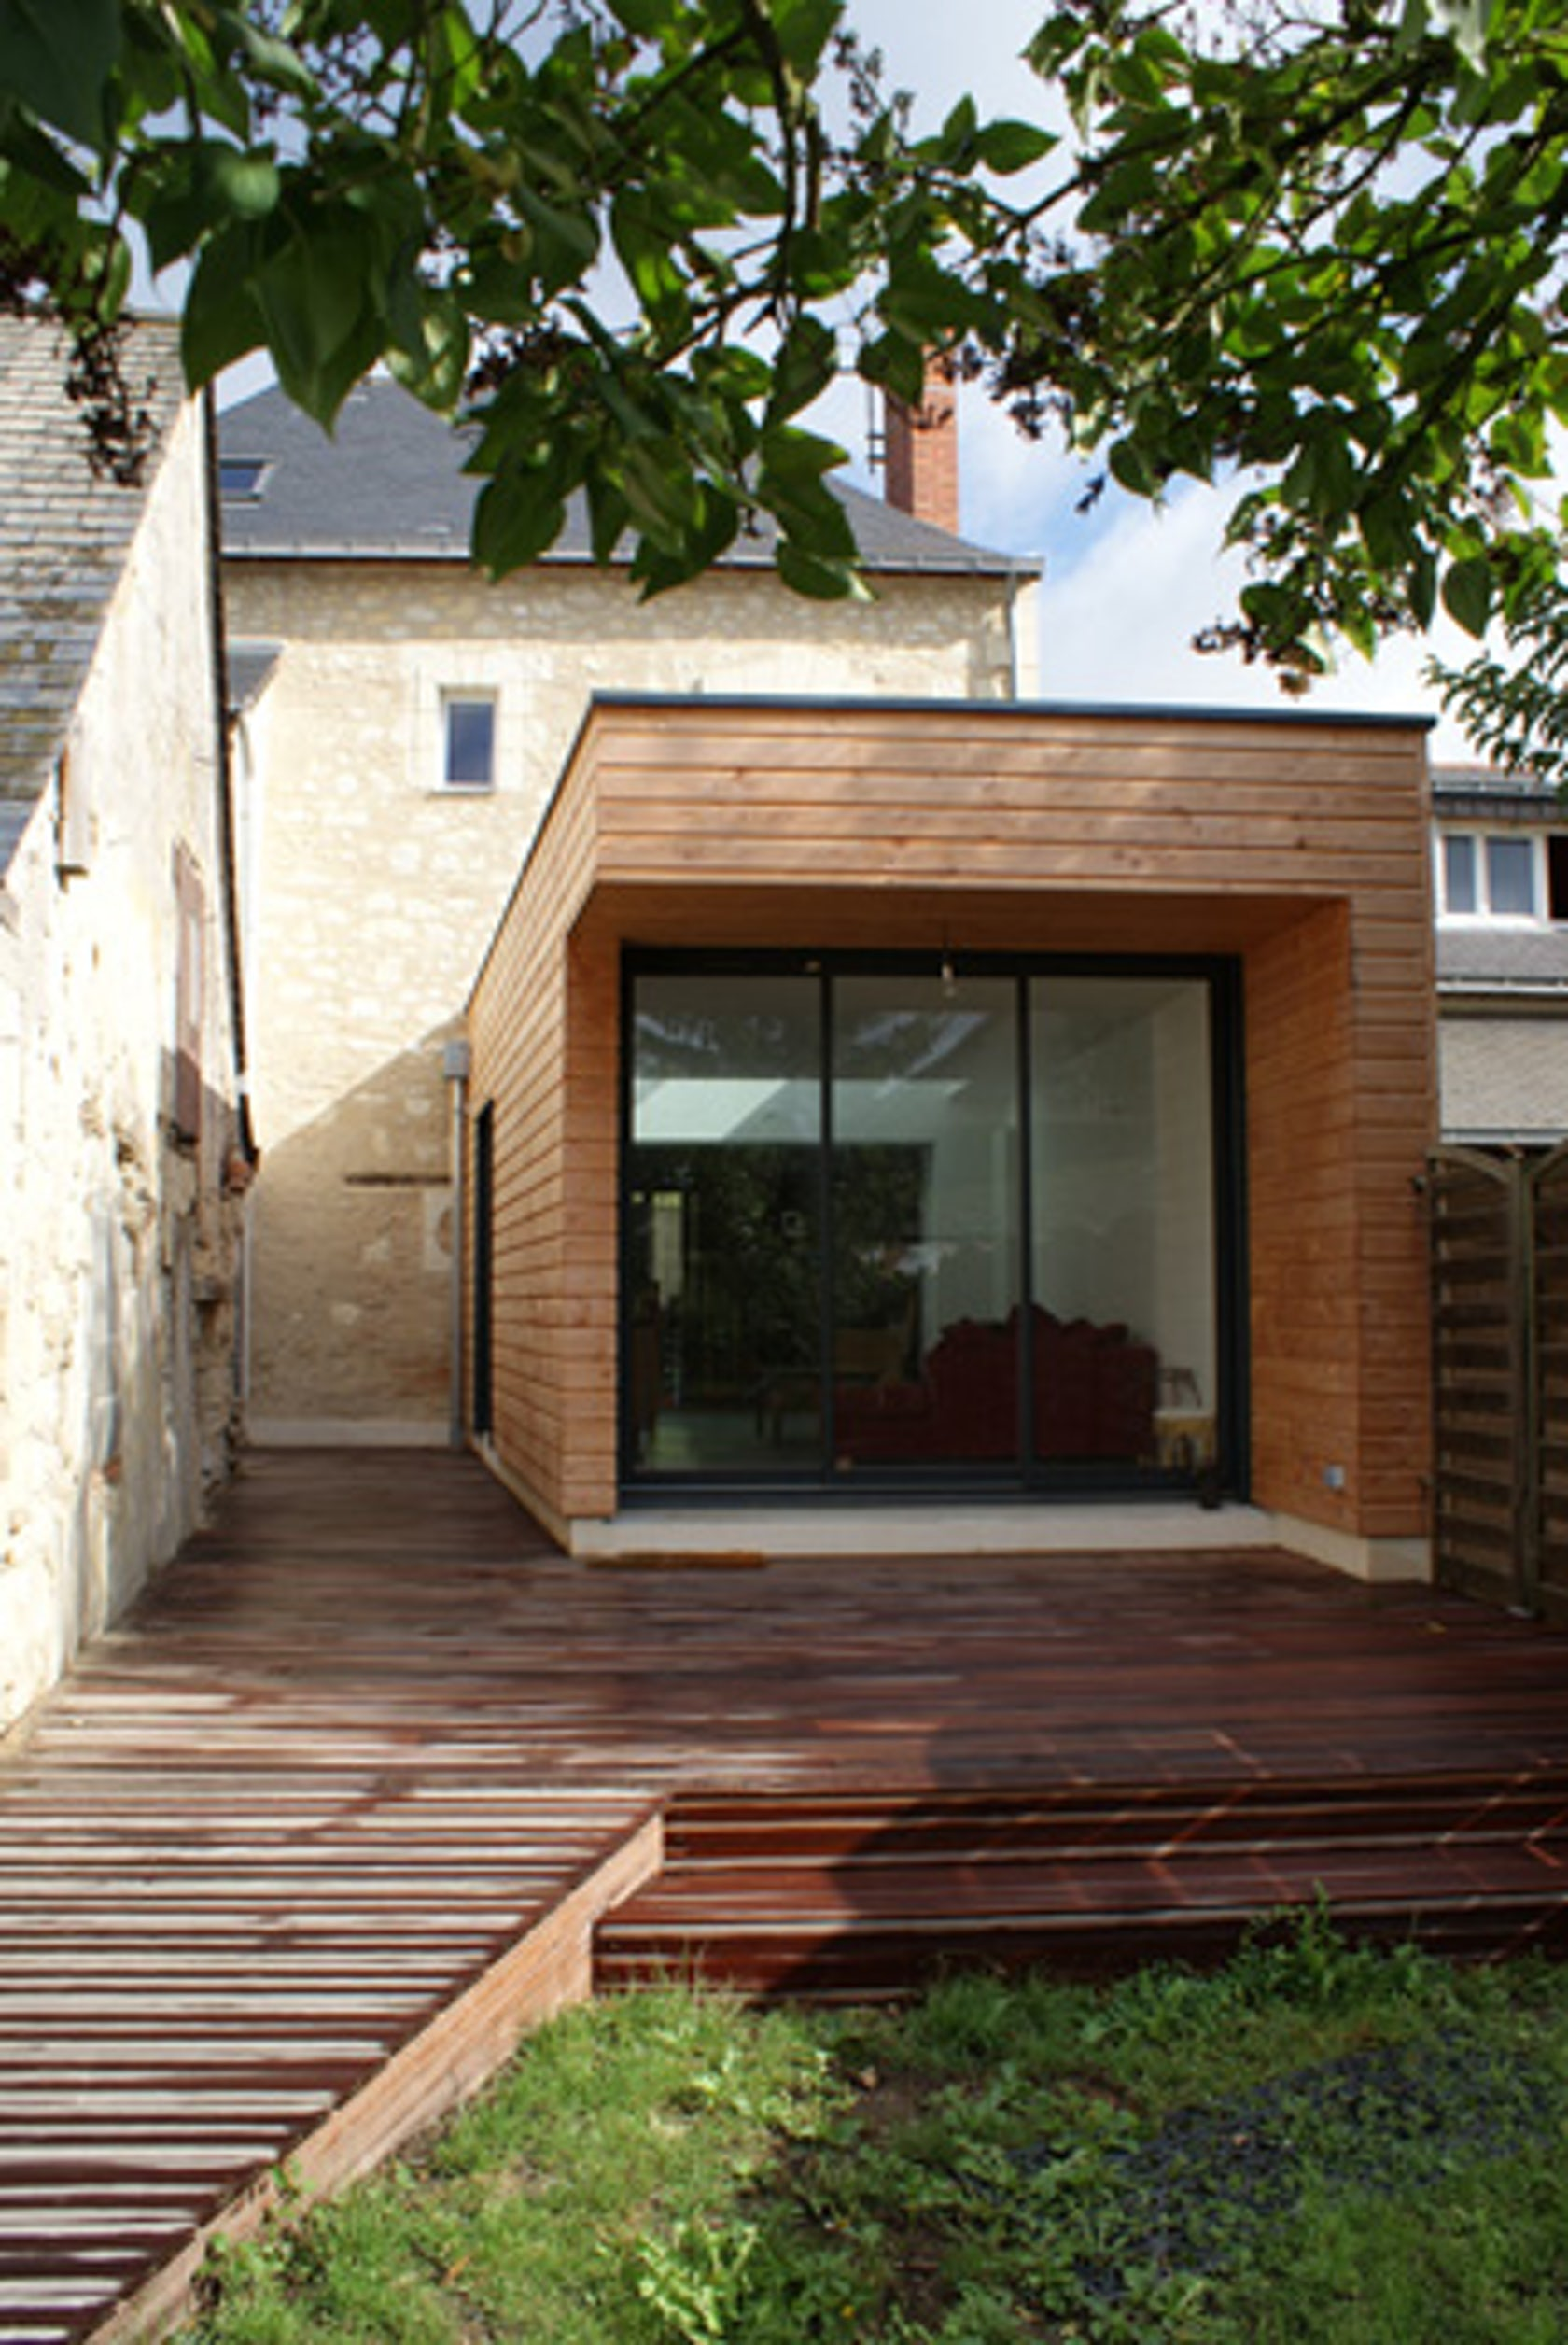 Extension Maison Bois Prix M2 Photos De Conception De